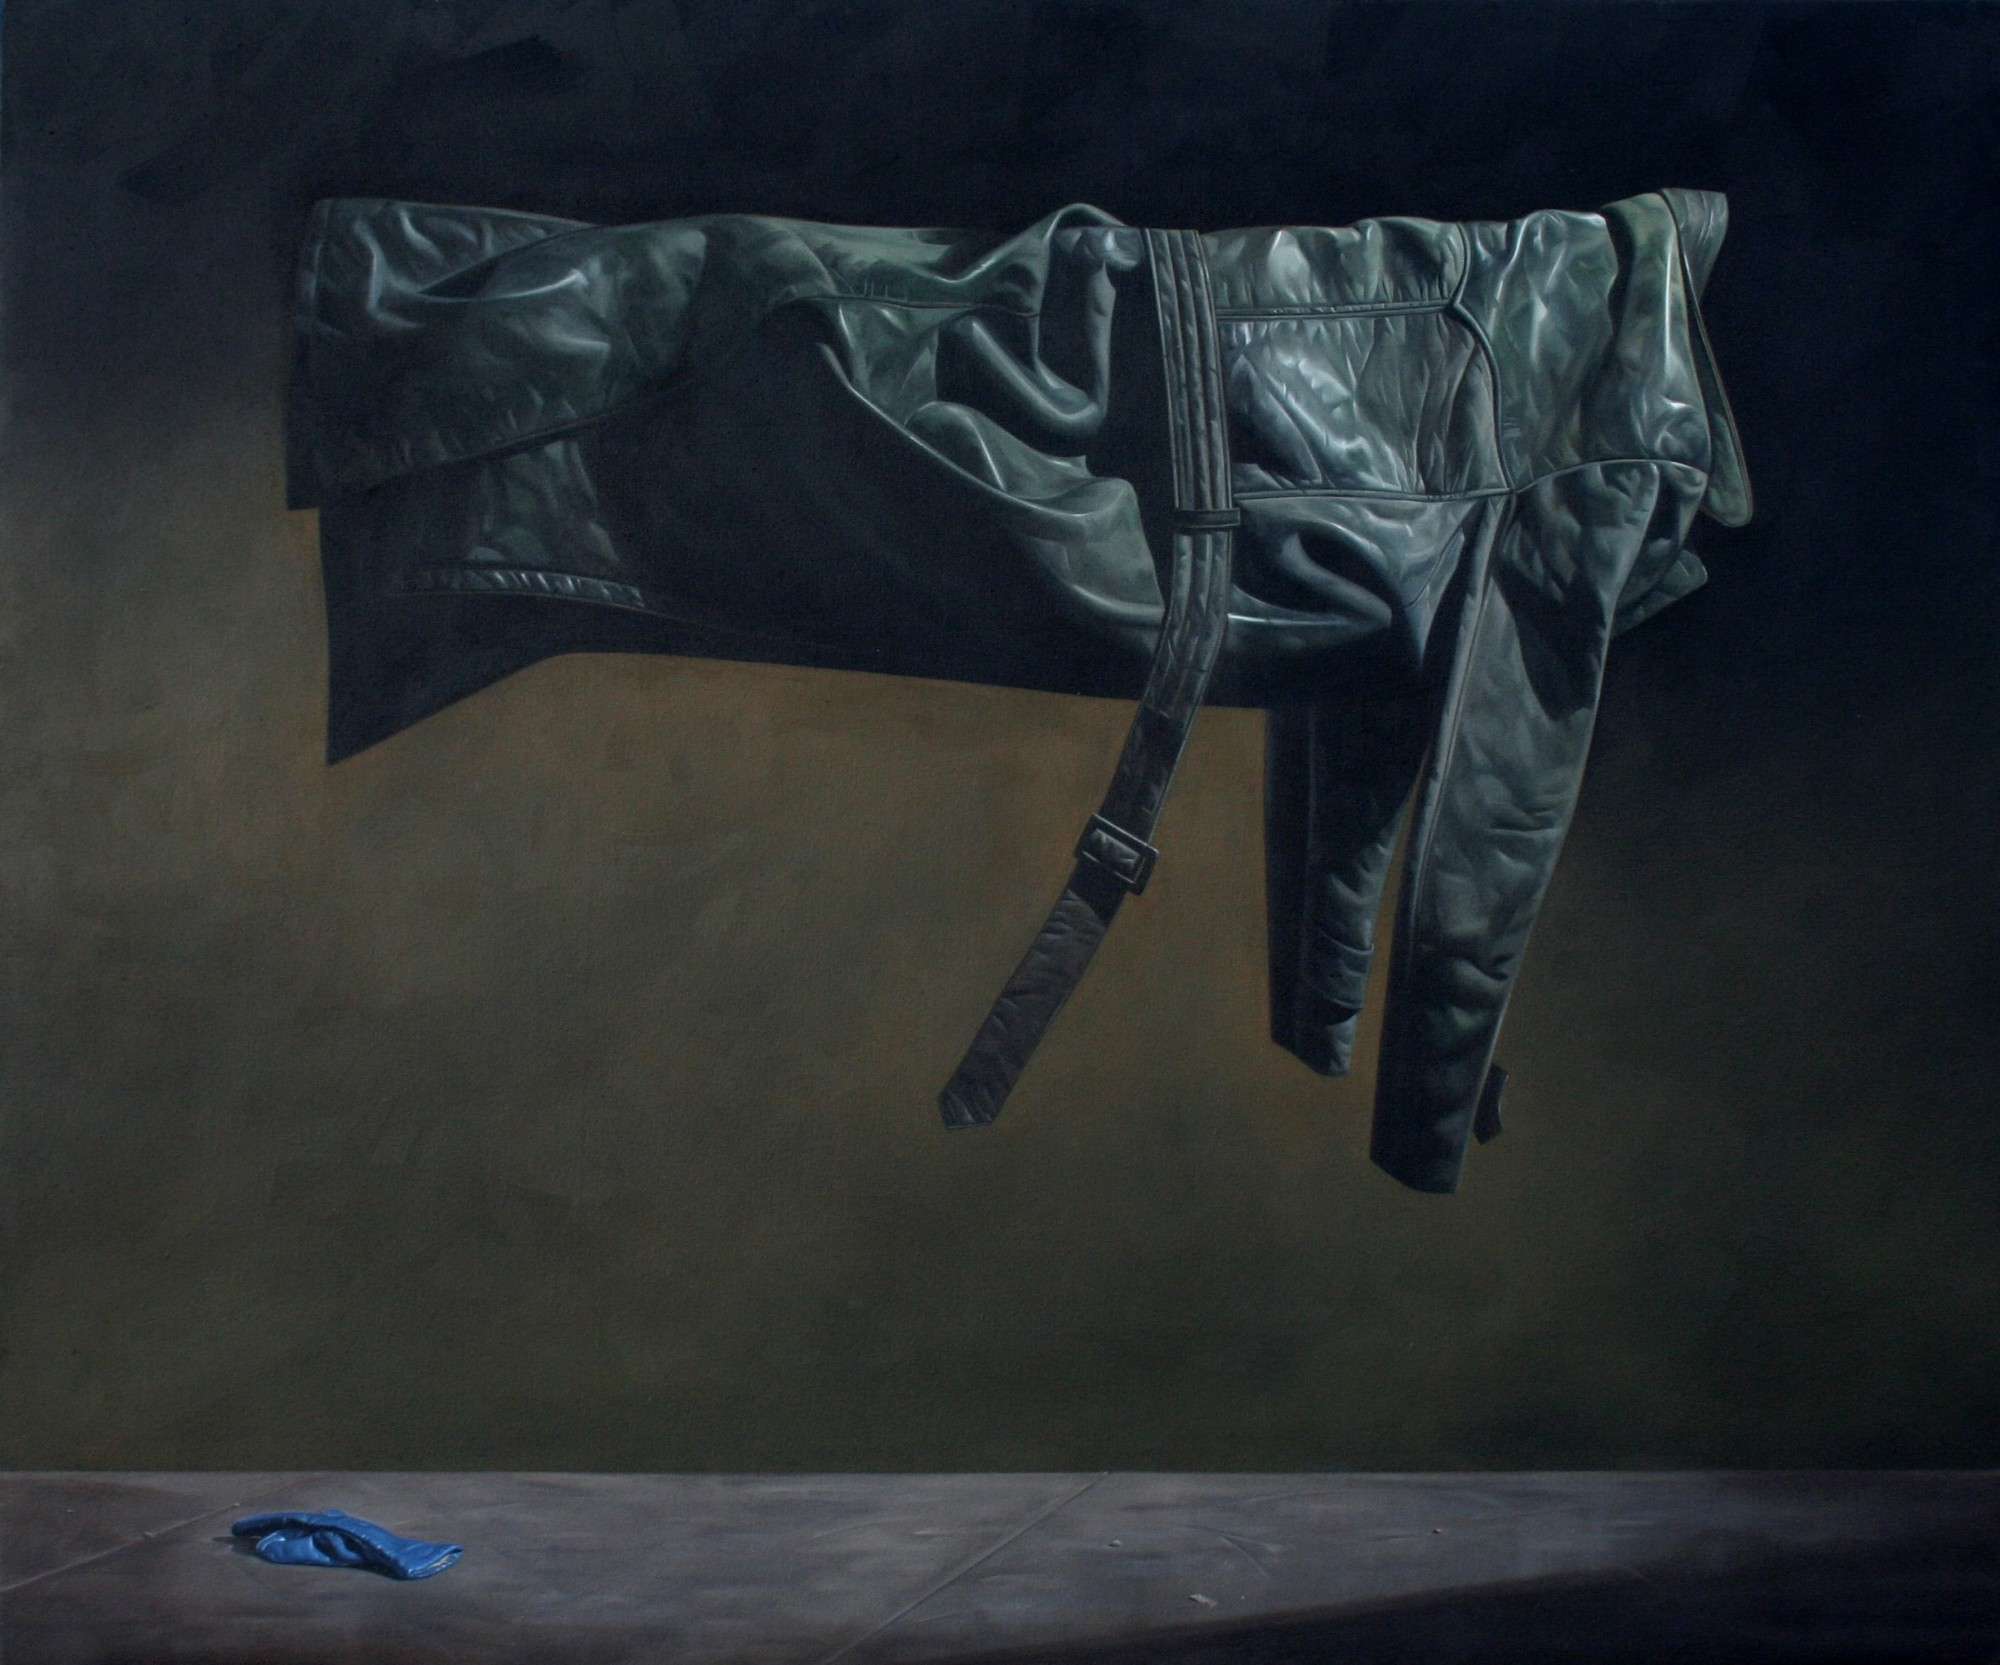 Compassion Postponed, oil on canvas, 153 x 127cm, 2008